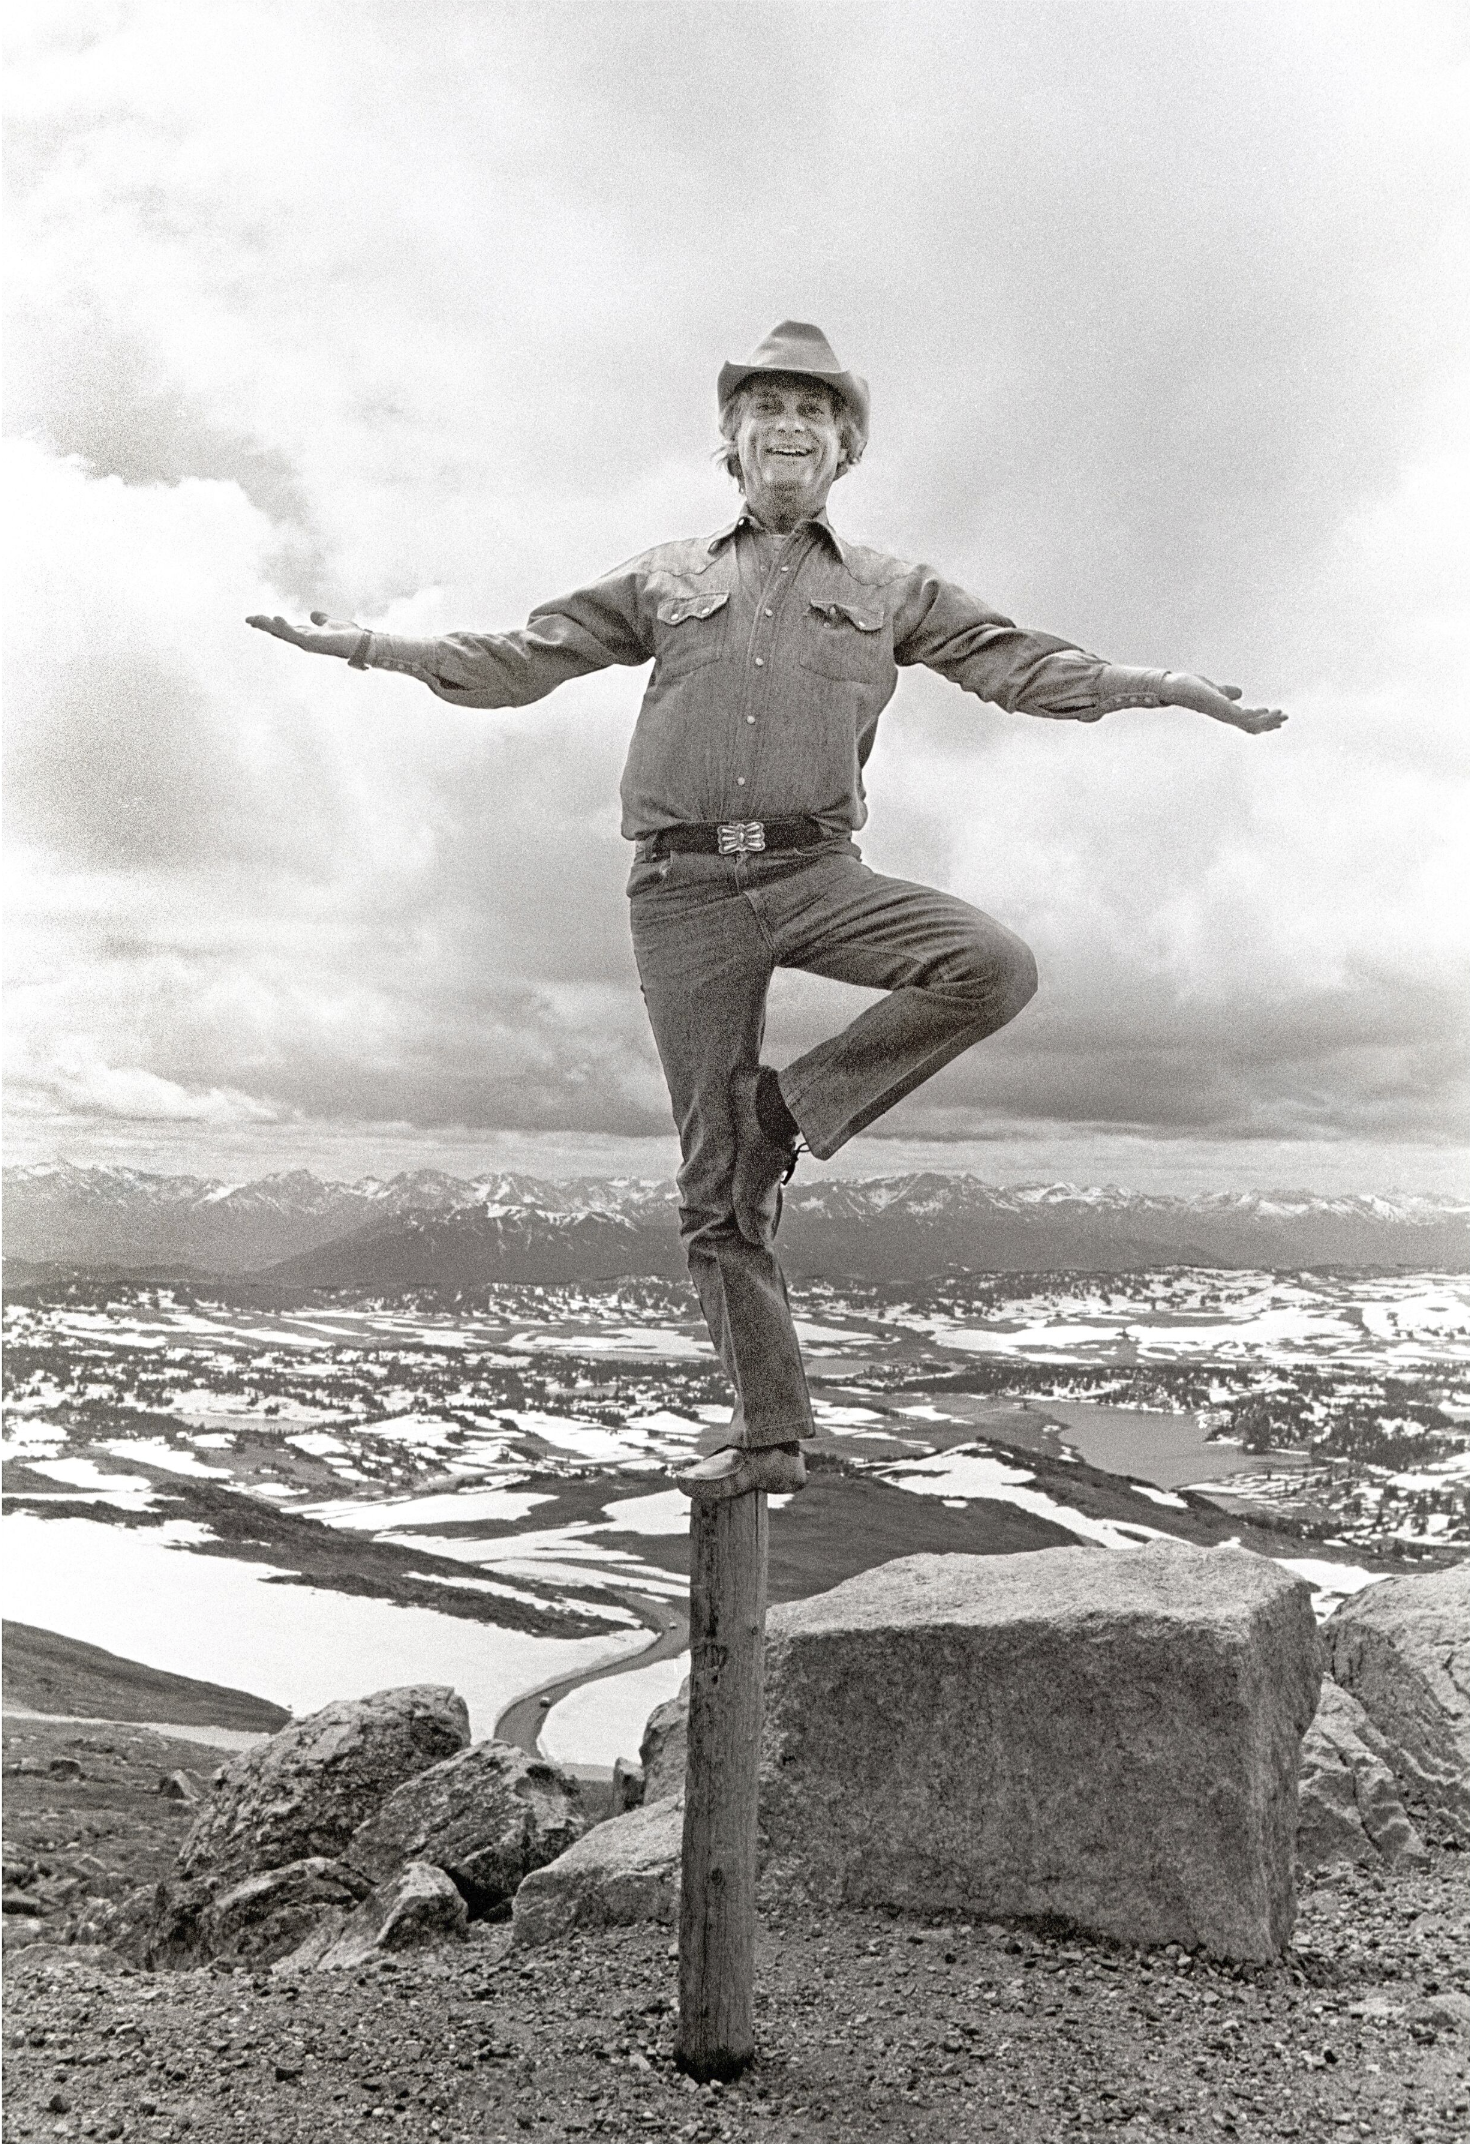 Richard Avedon Balancing on Pole, Beartooth Pass, Wyoming, 1982